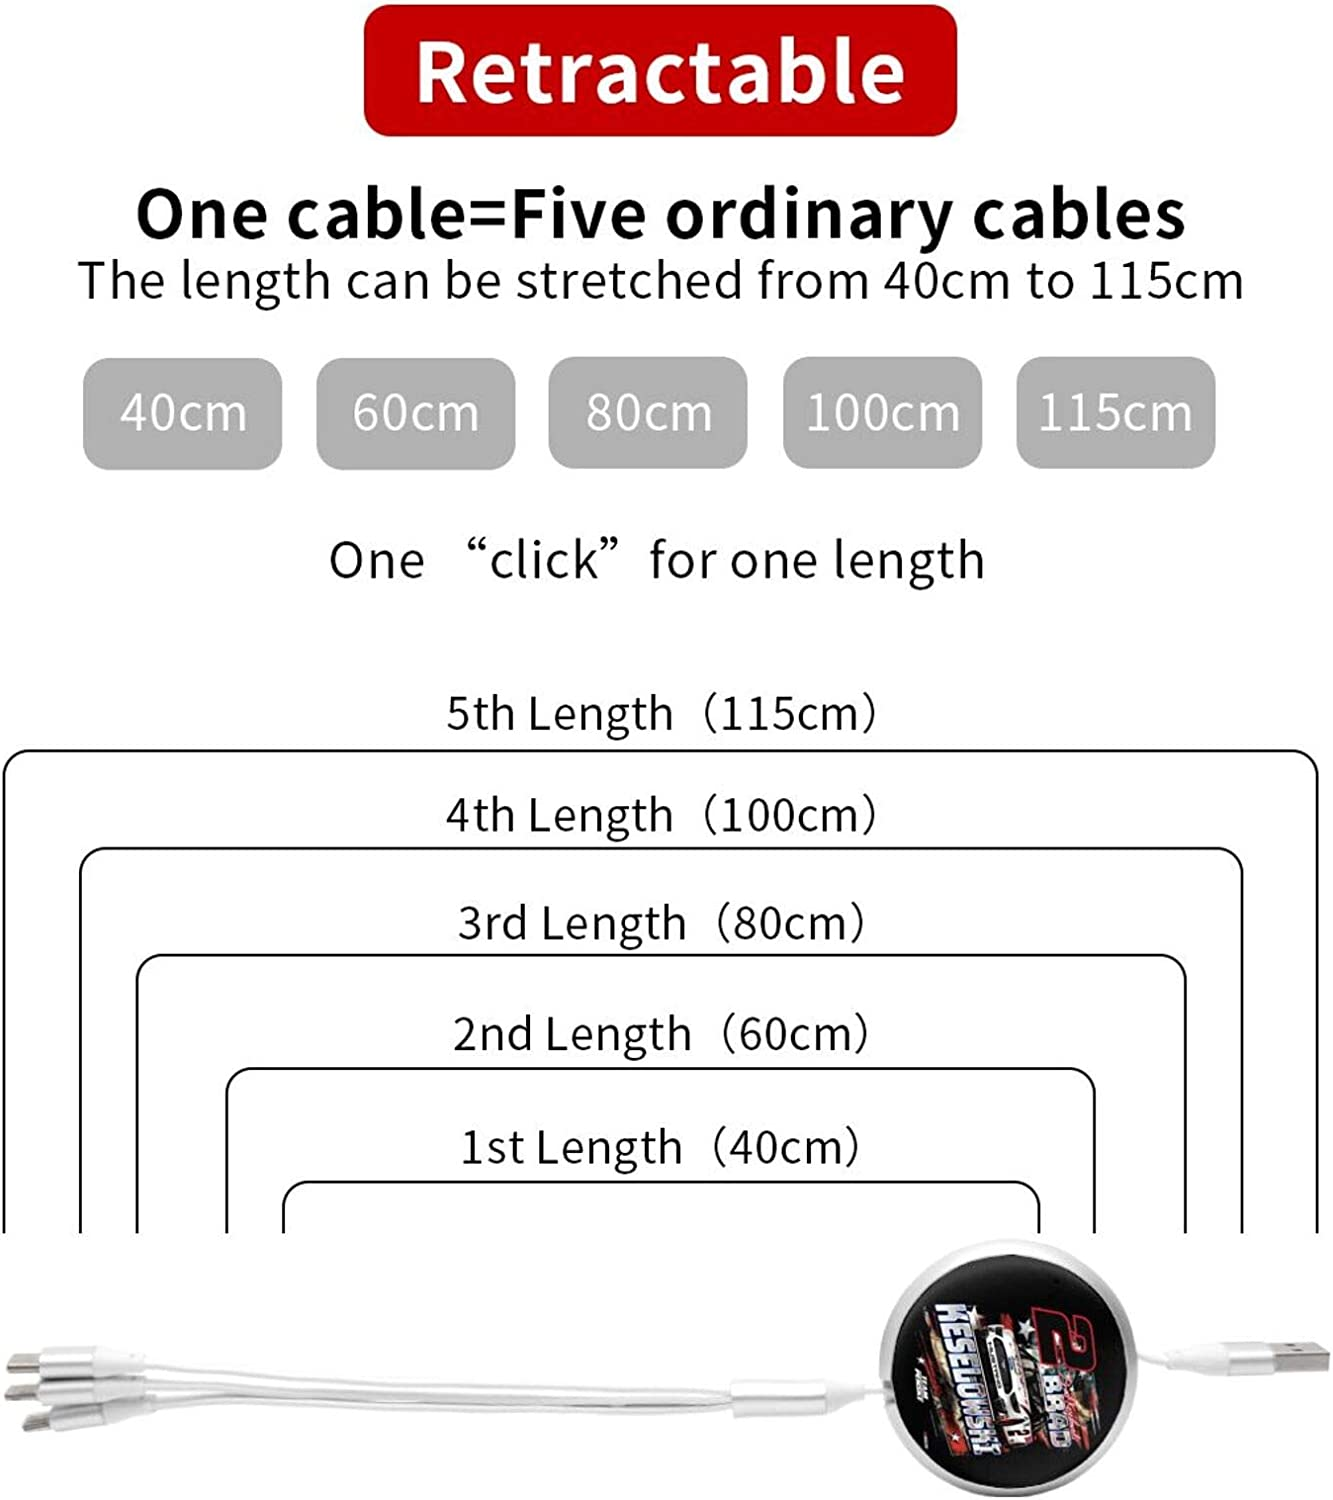 FGHFGHF Brad Keselowski 3 in 1 Charging Cable Multiple Device Phone Connector USB Universal Charger Cord Adapter Compatible with Cell Phone Tablets More